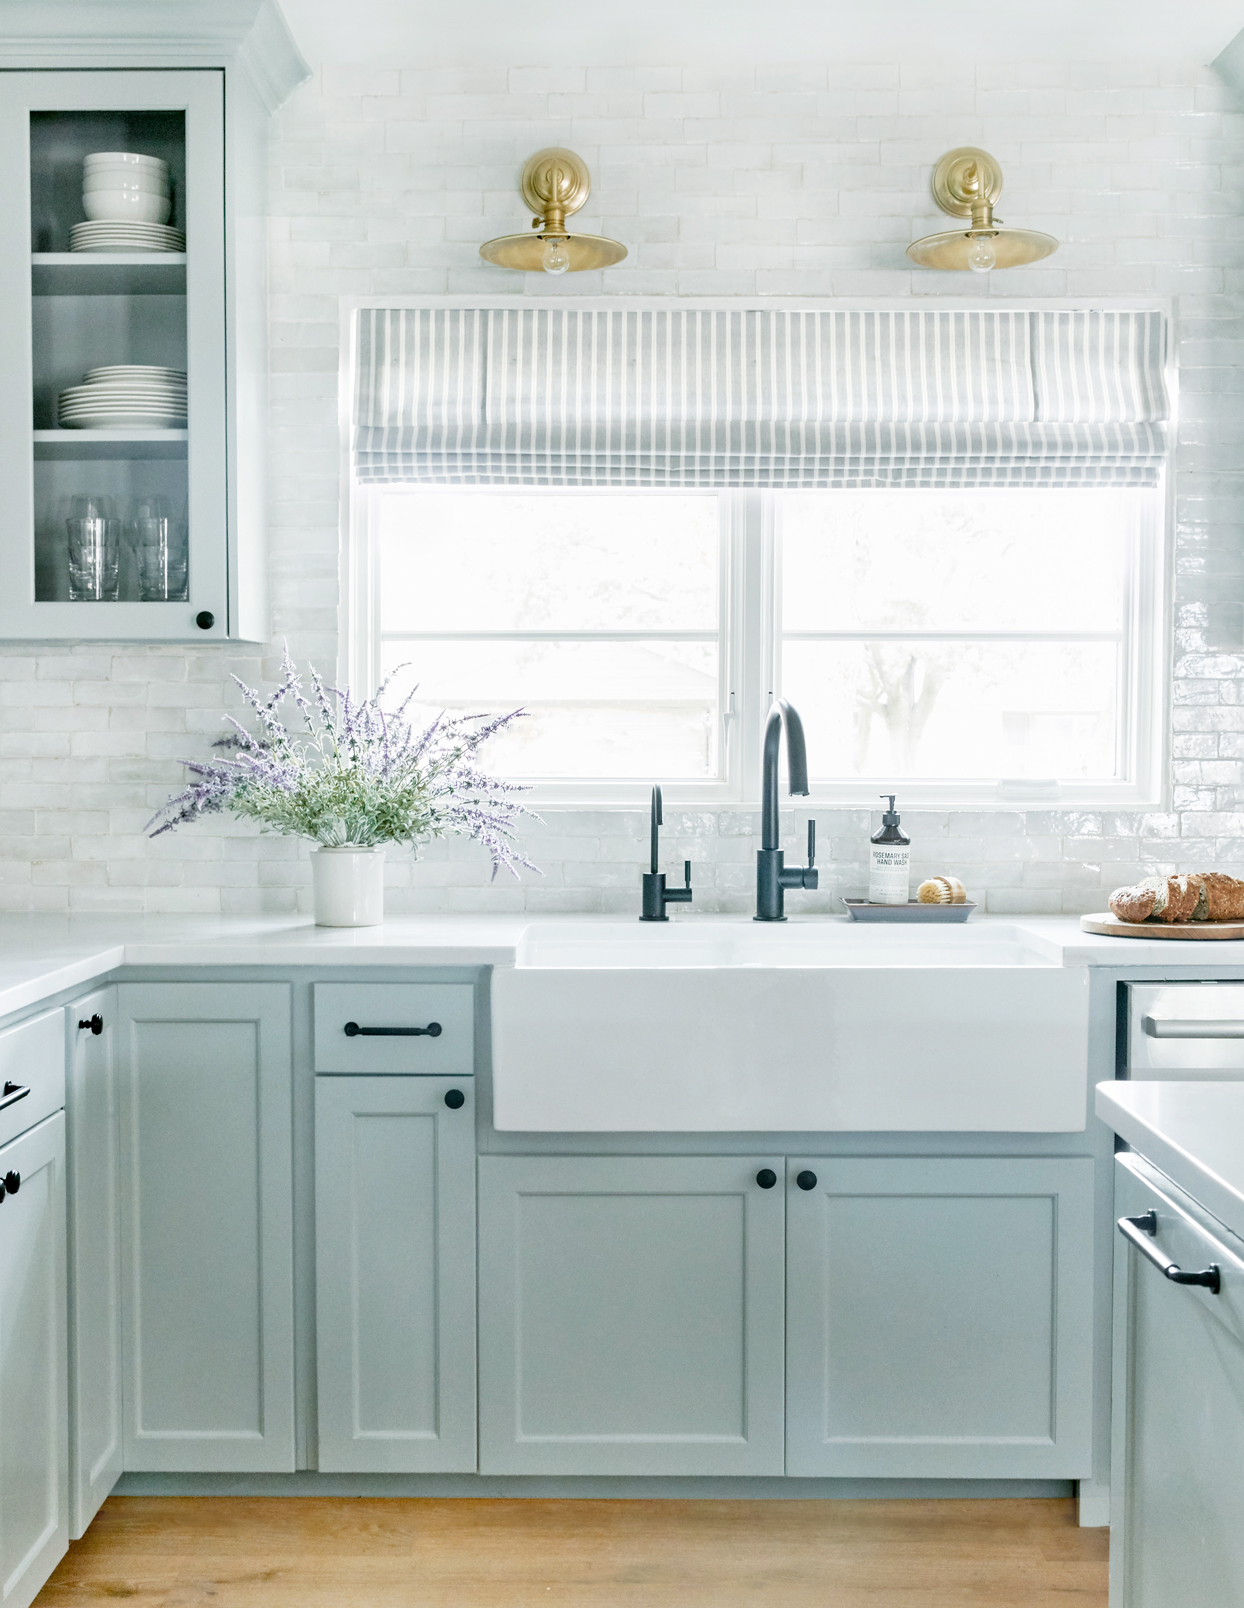 sparkling clean kitchen in blue and white